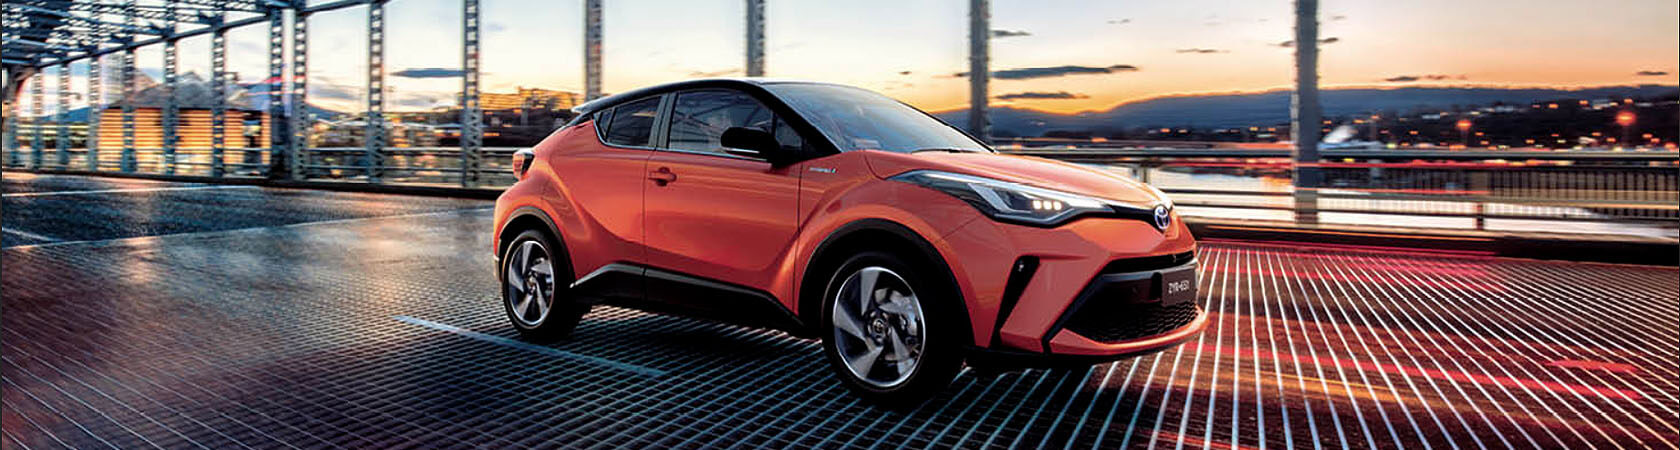 New England Toyota - Inverell C-HR